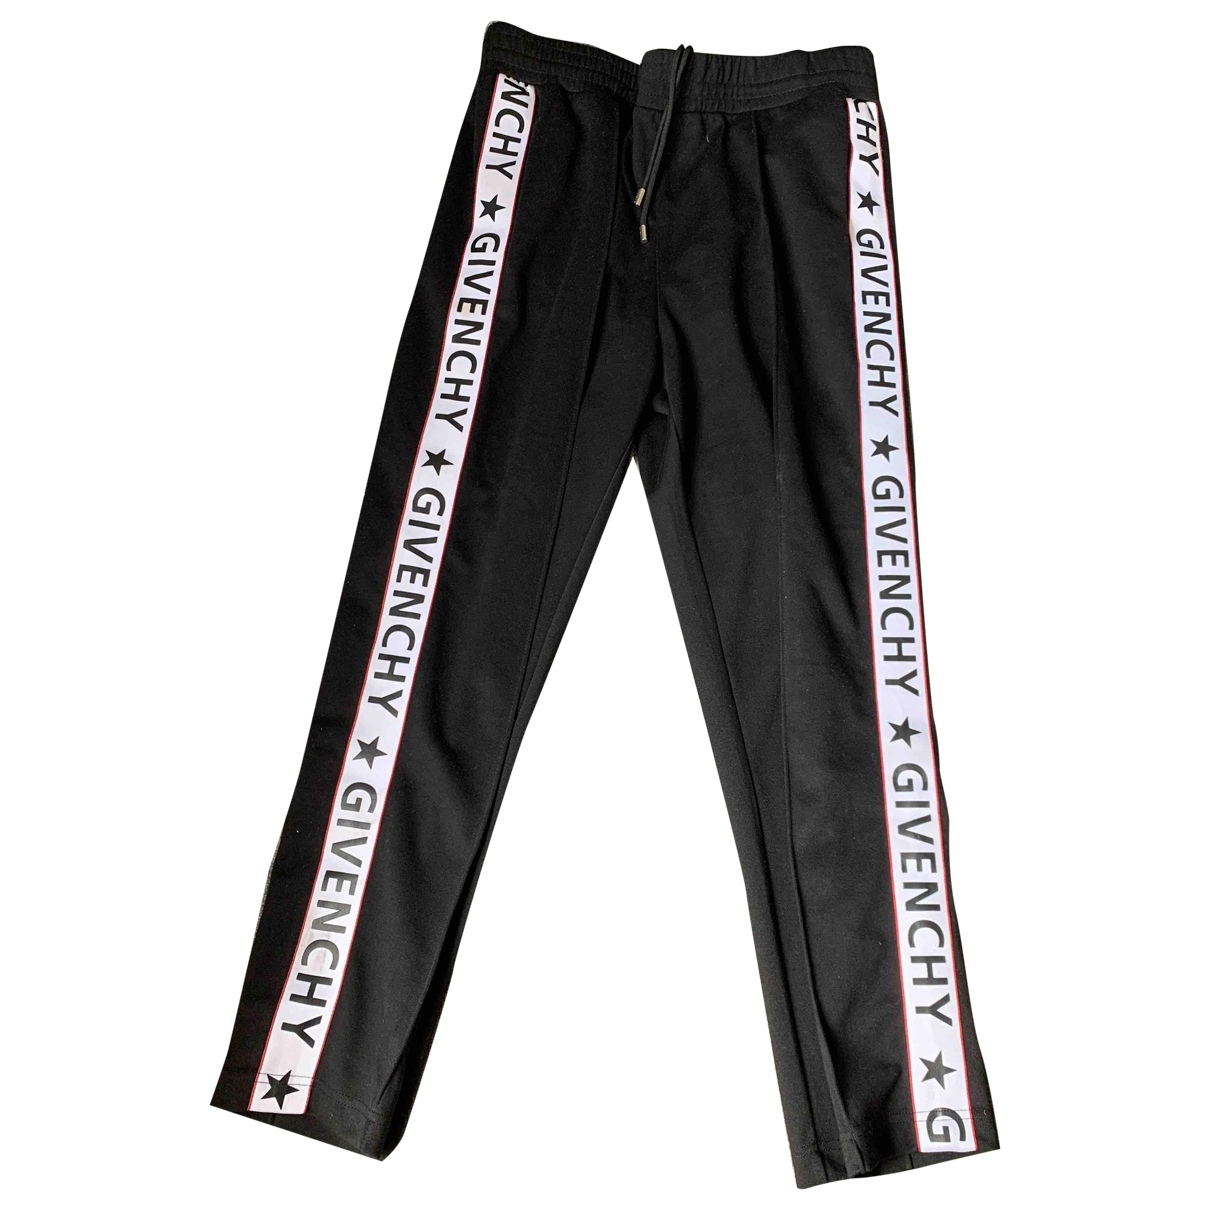 Givenchy \N Black Cotton Trousers for Women XL International